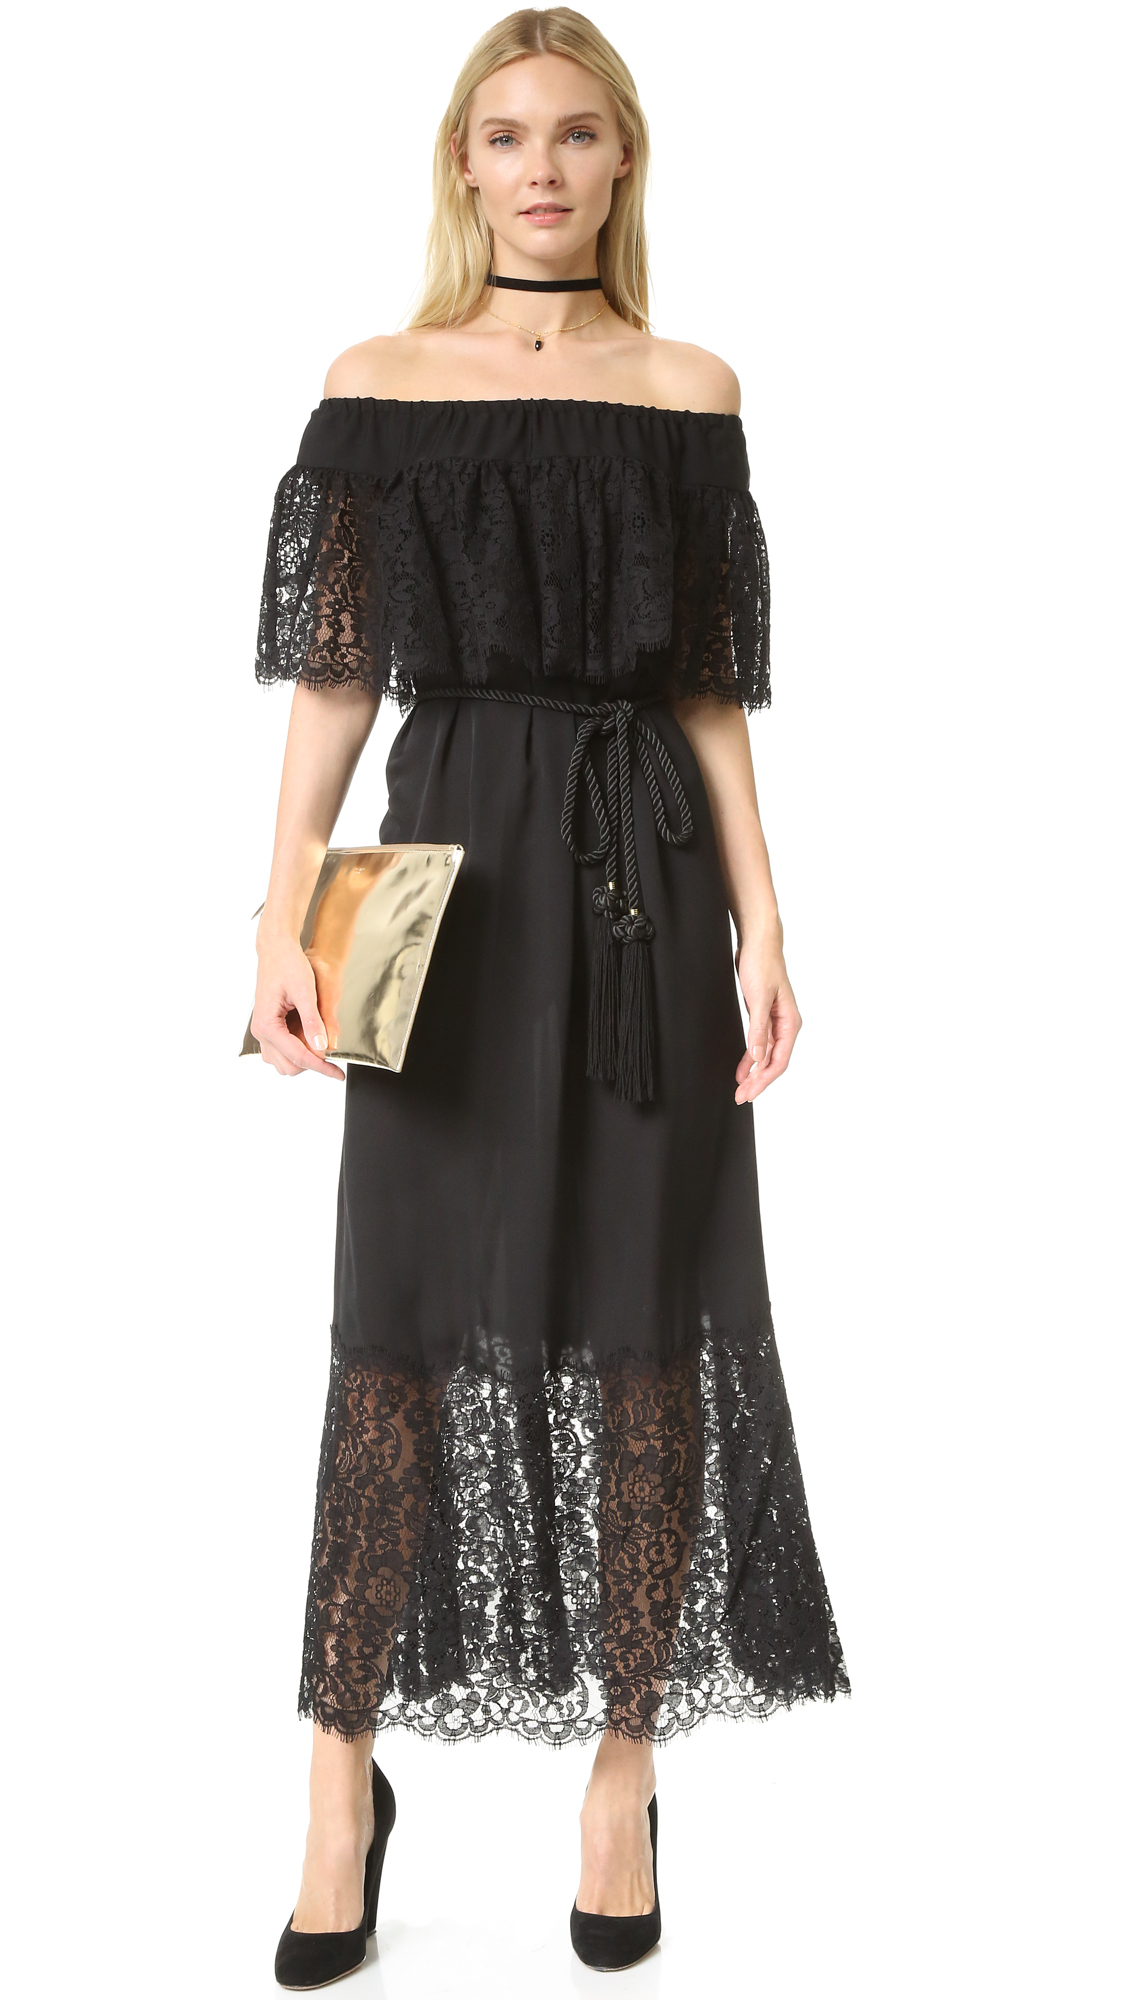 Rachel zoe Pila Dress in Black